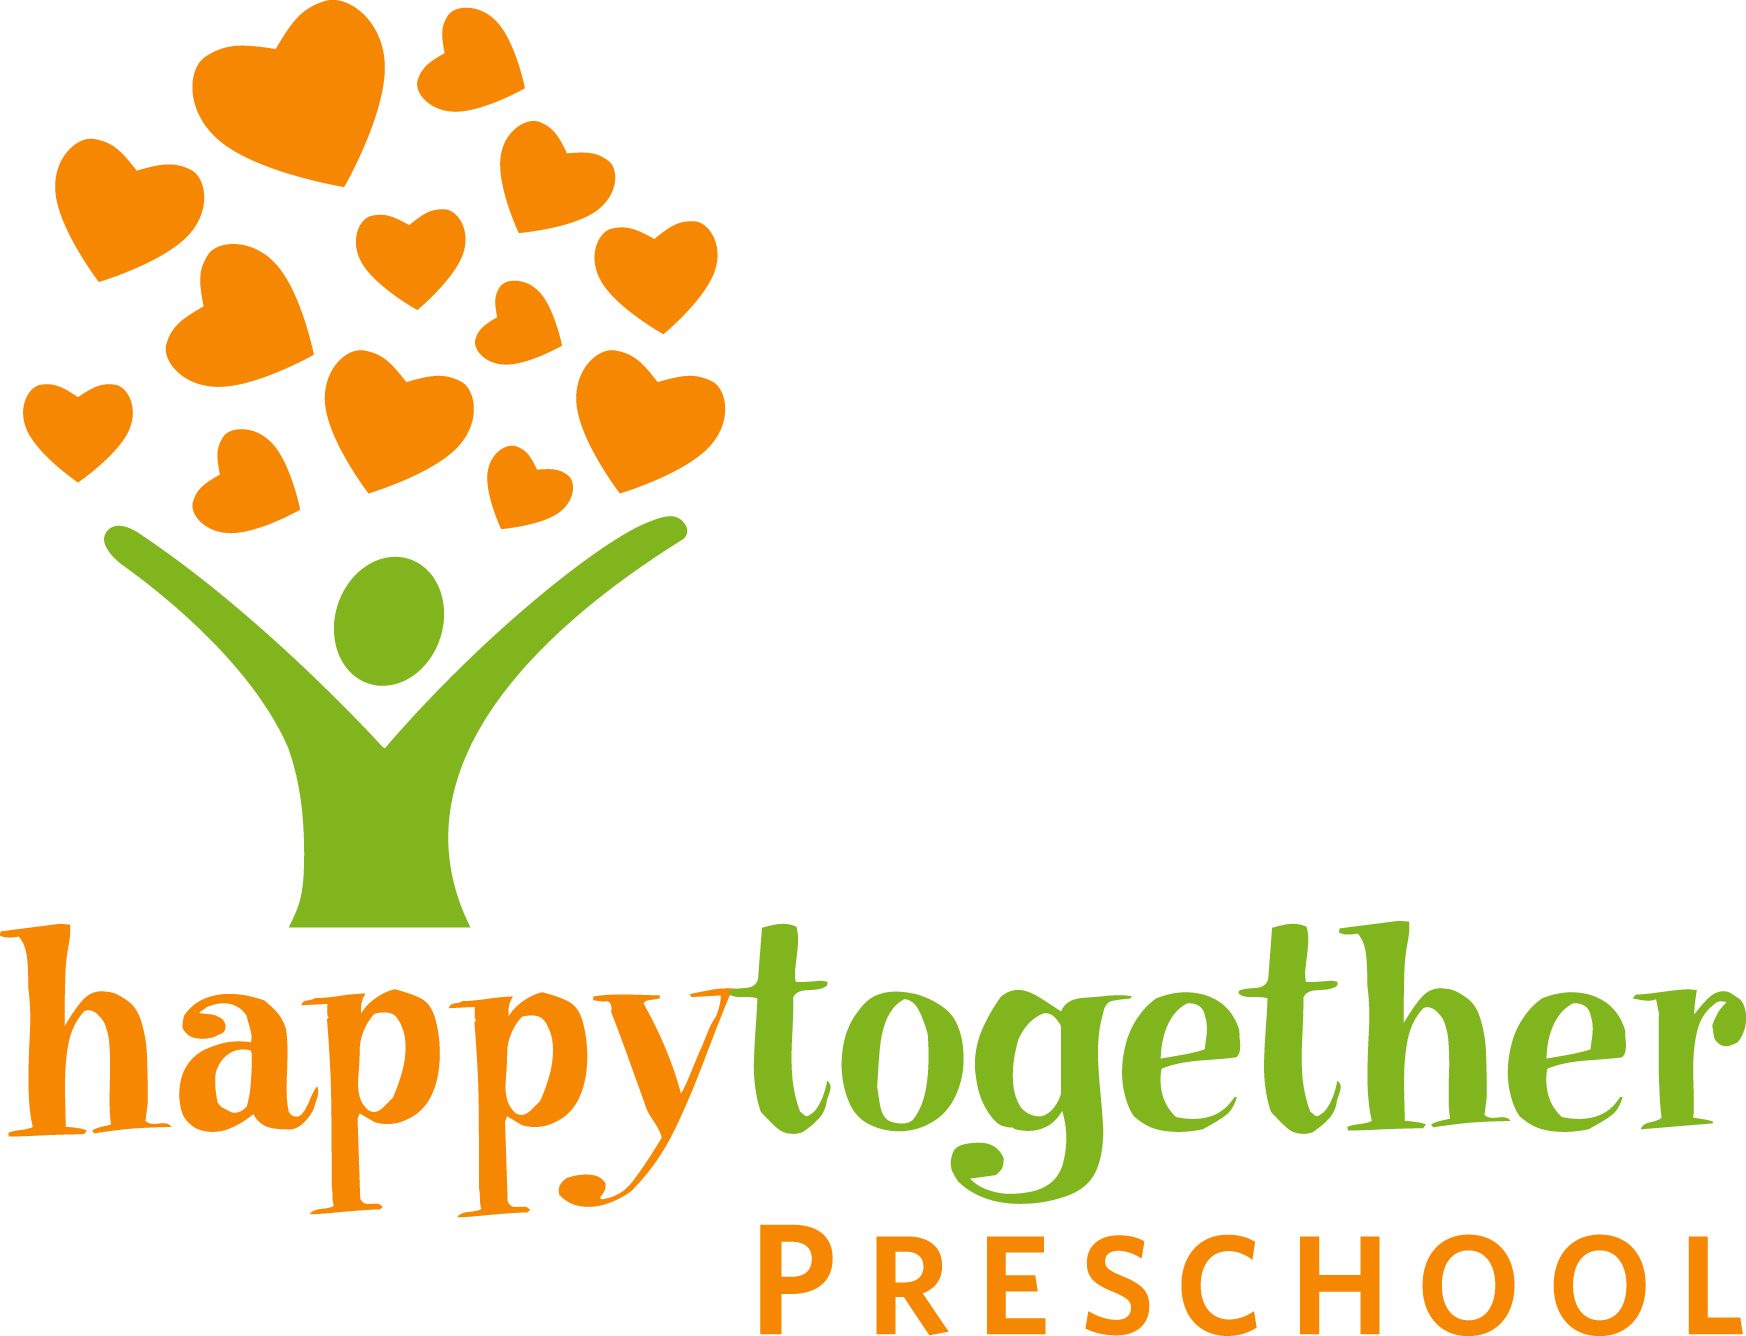 Happy Together Preschool, Piedmont, CA - Localwise business profile picture